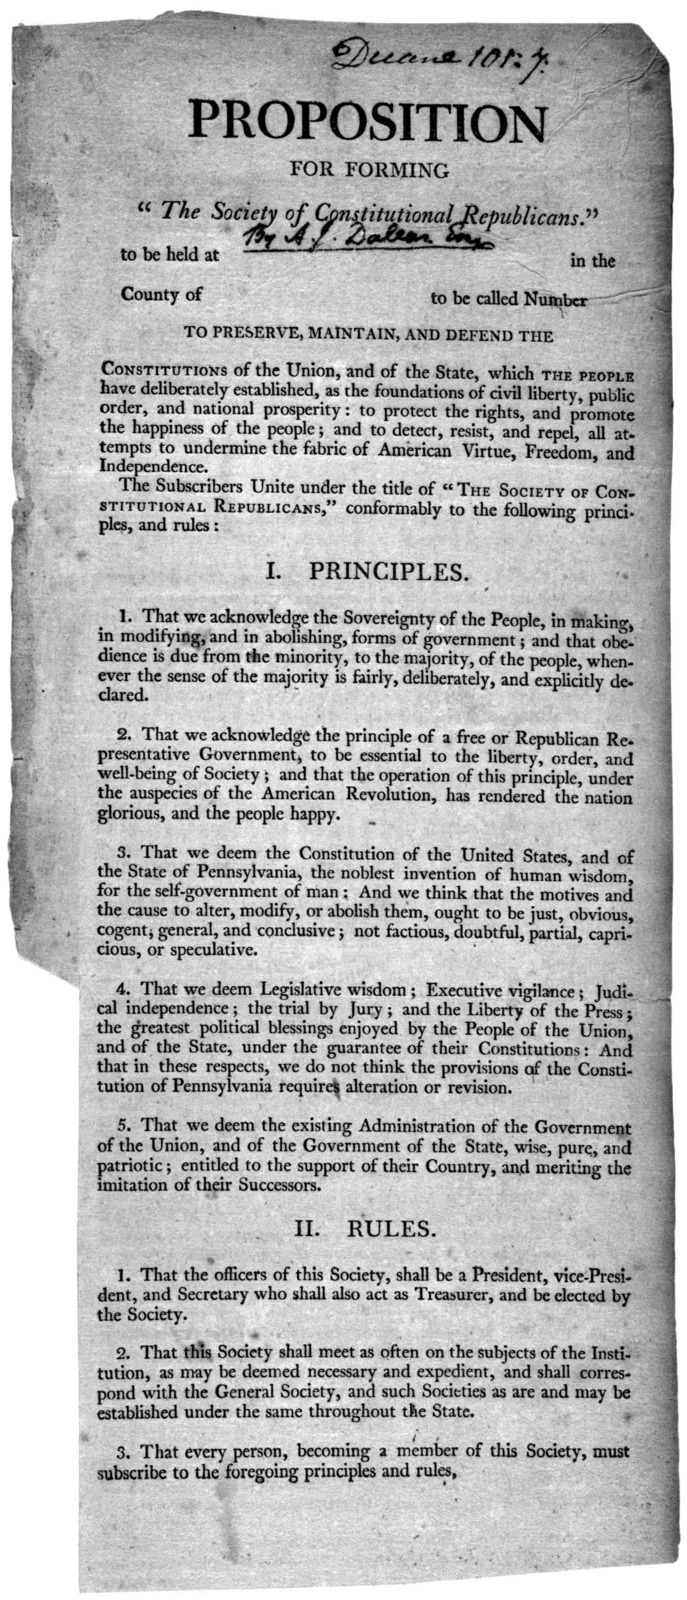 "Proposition for forming ""The Society of Constitutional Republicans to be held at in the County of to be called Number to preserve, maintain, and defend the constitutions of the Union, and of the State ... [182-?]."